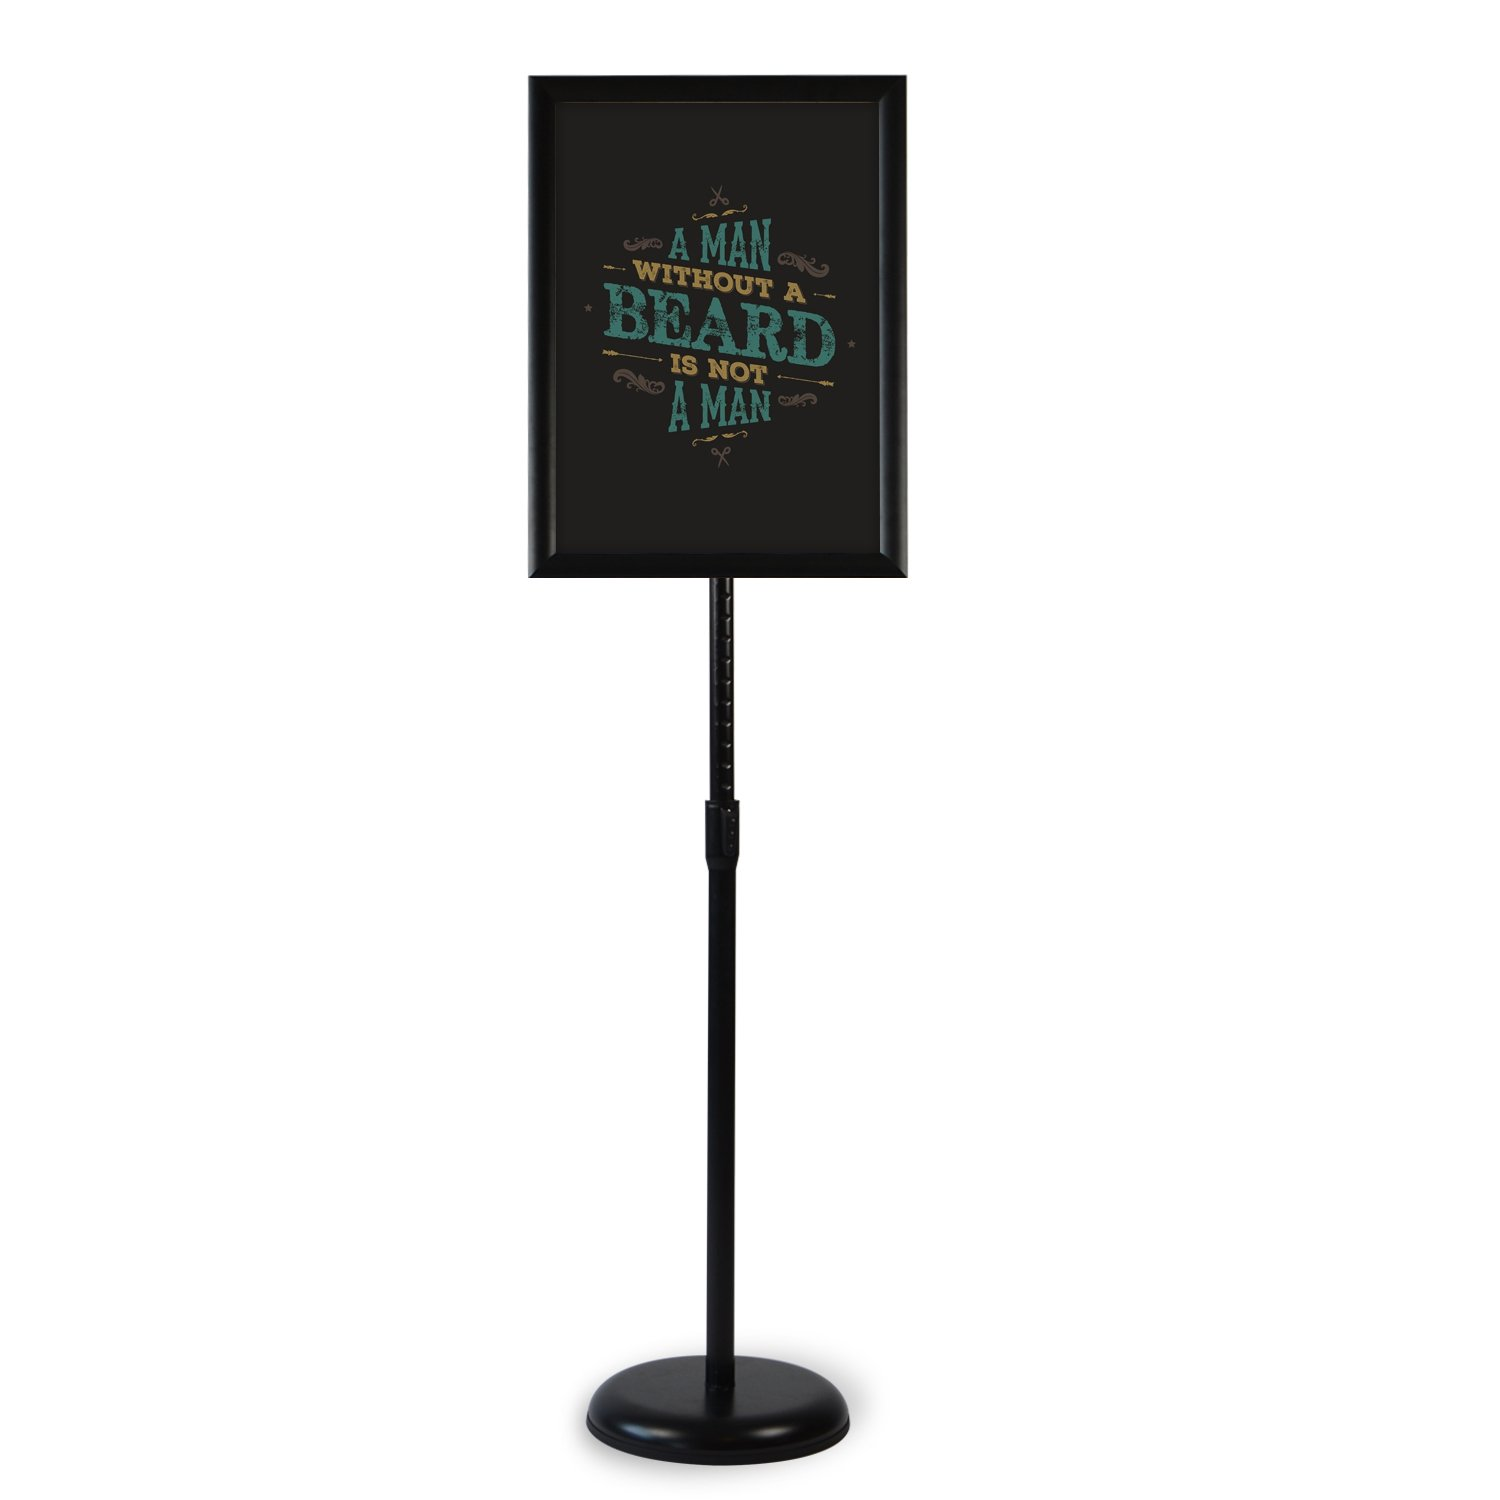 Klvied Heavy Duty Pedestal Poster Sign Stand, Adjustable Aluminum Snap Open Frame for 8.5 x 11 Inches Graphics, Both Vertical and Horizontal View, Black